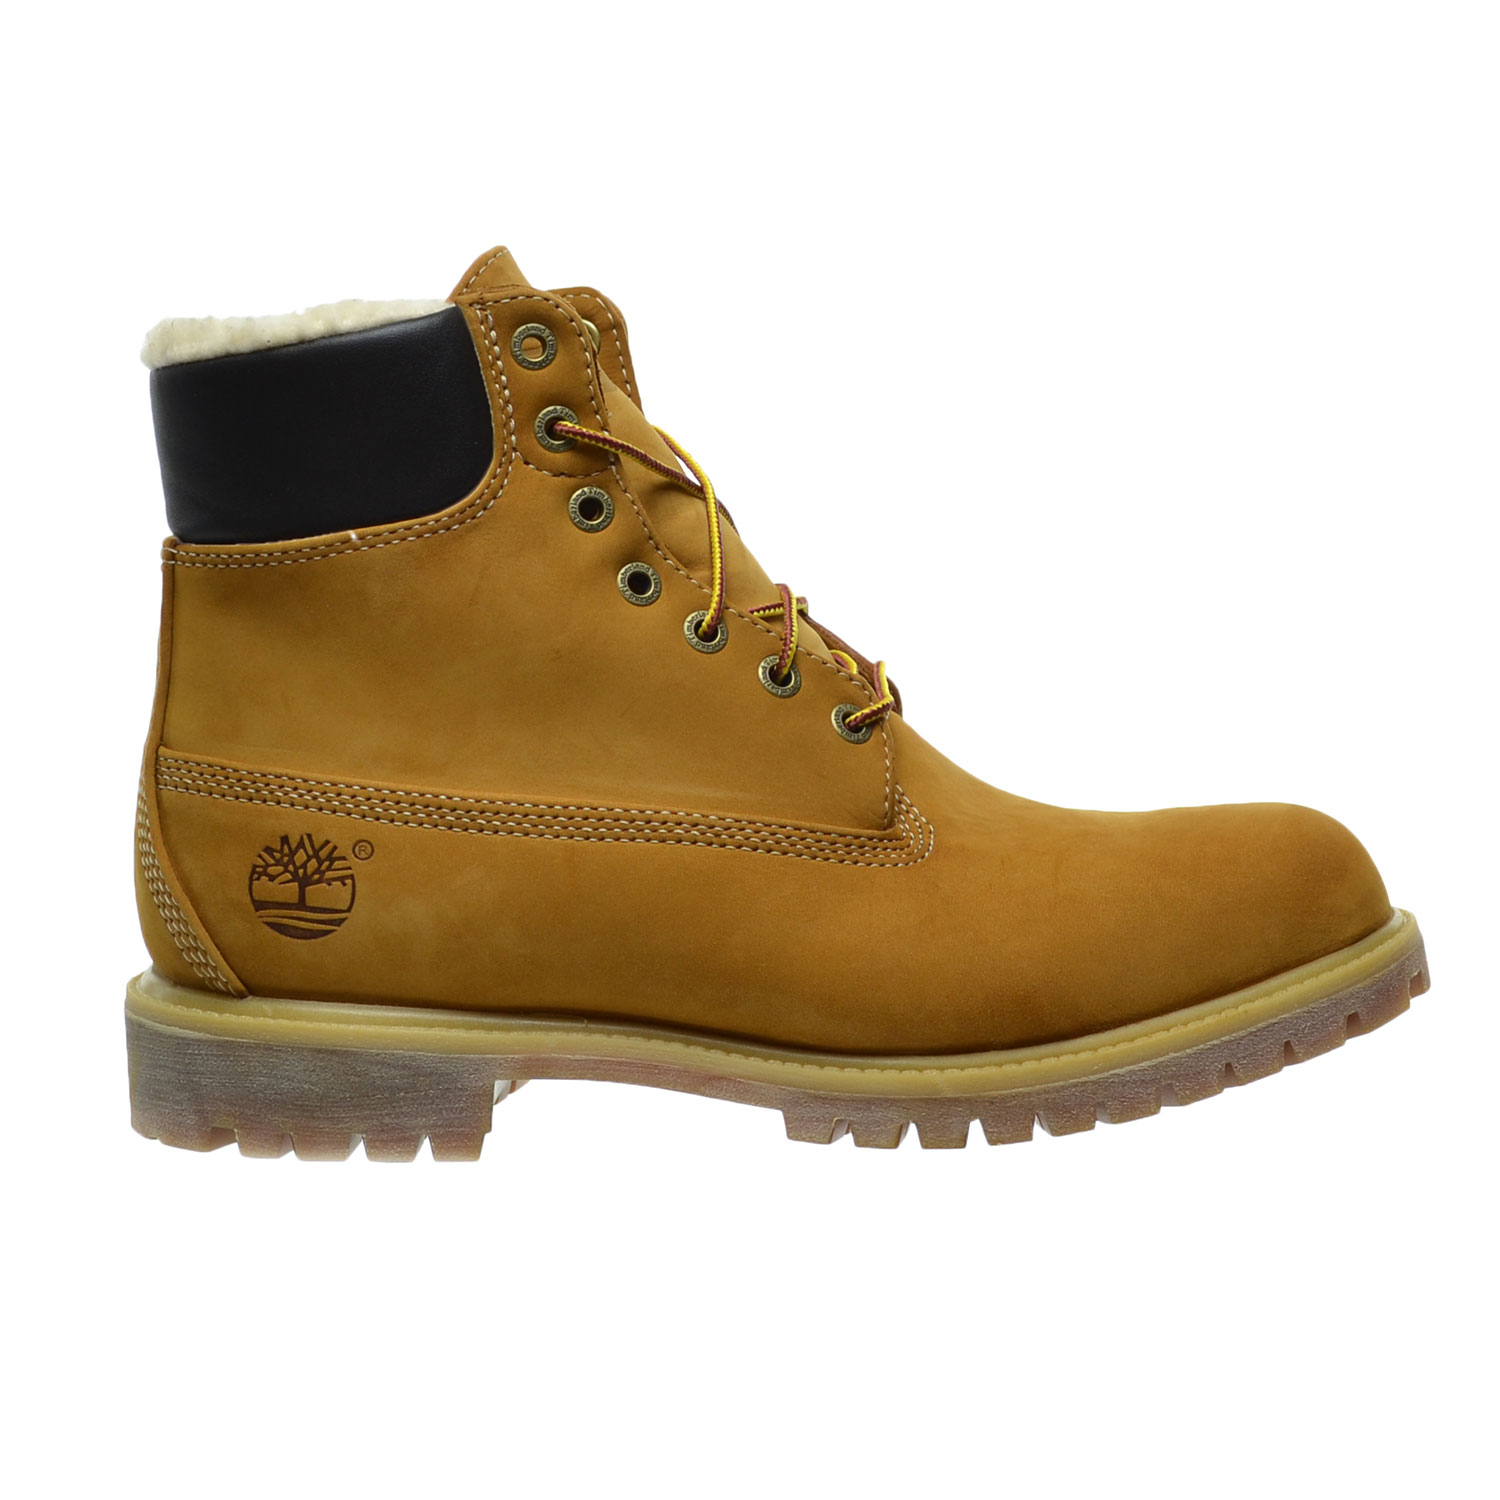 Timberland 6 Inch Fur Lined Nubuck Men's Boots Wheat tb0a13ga by Timberland